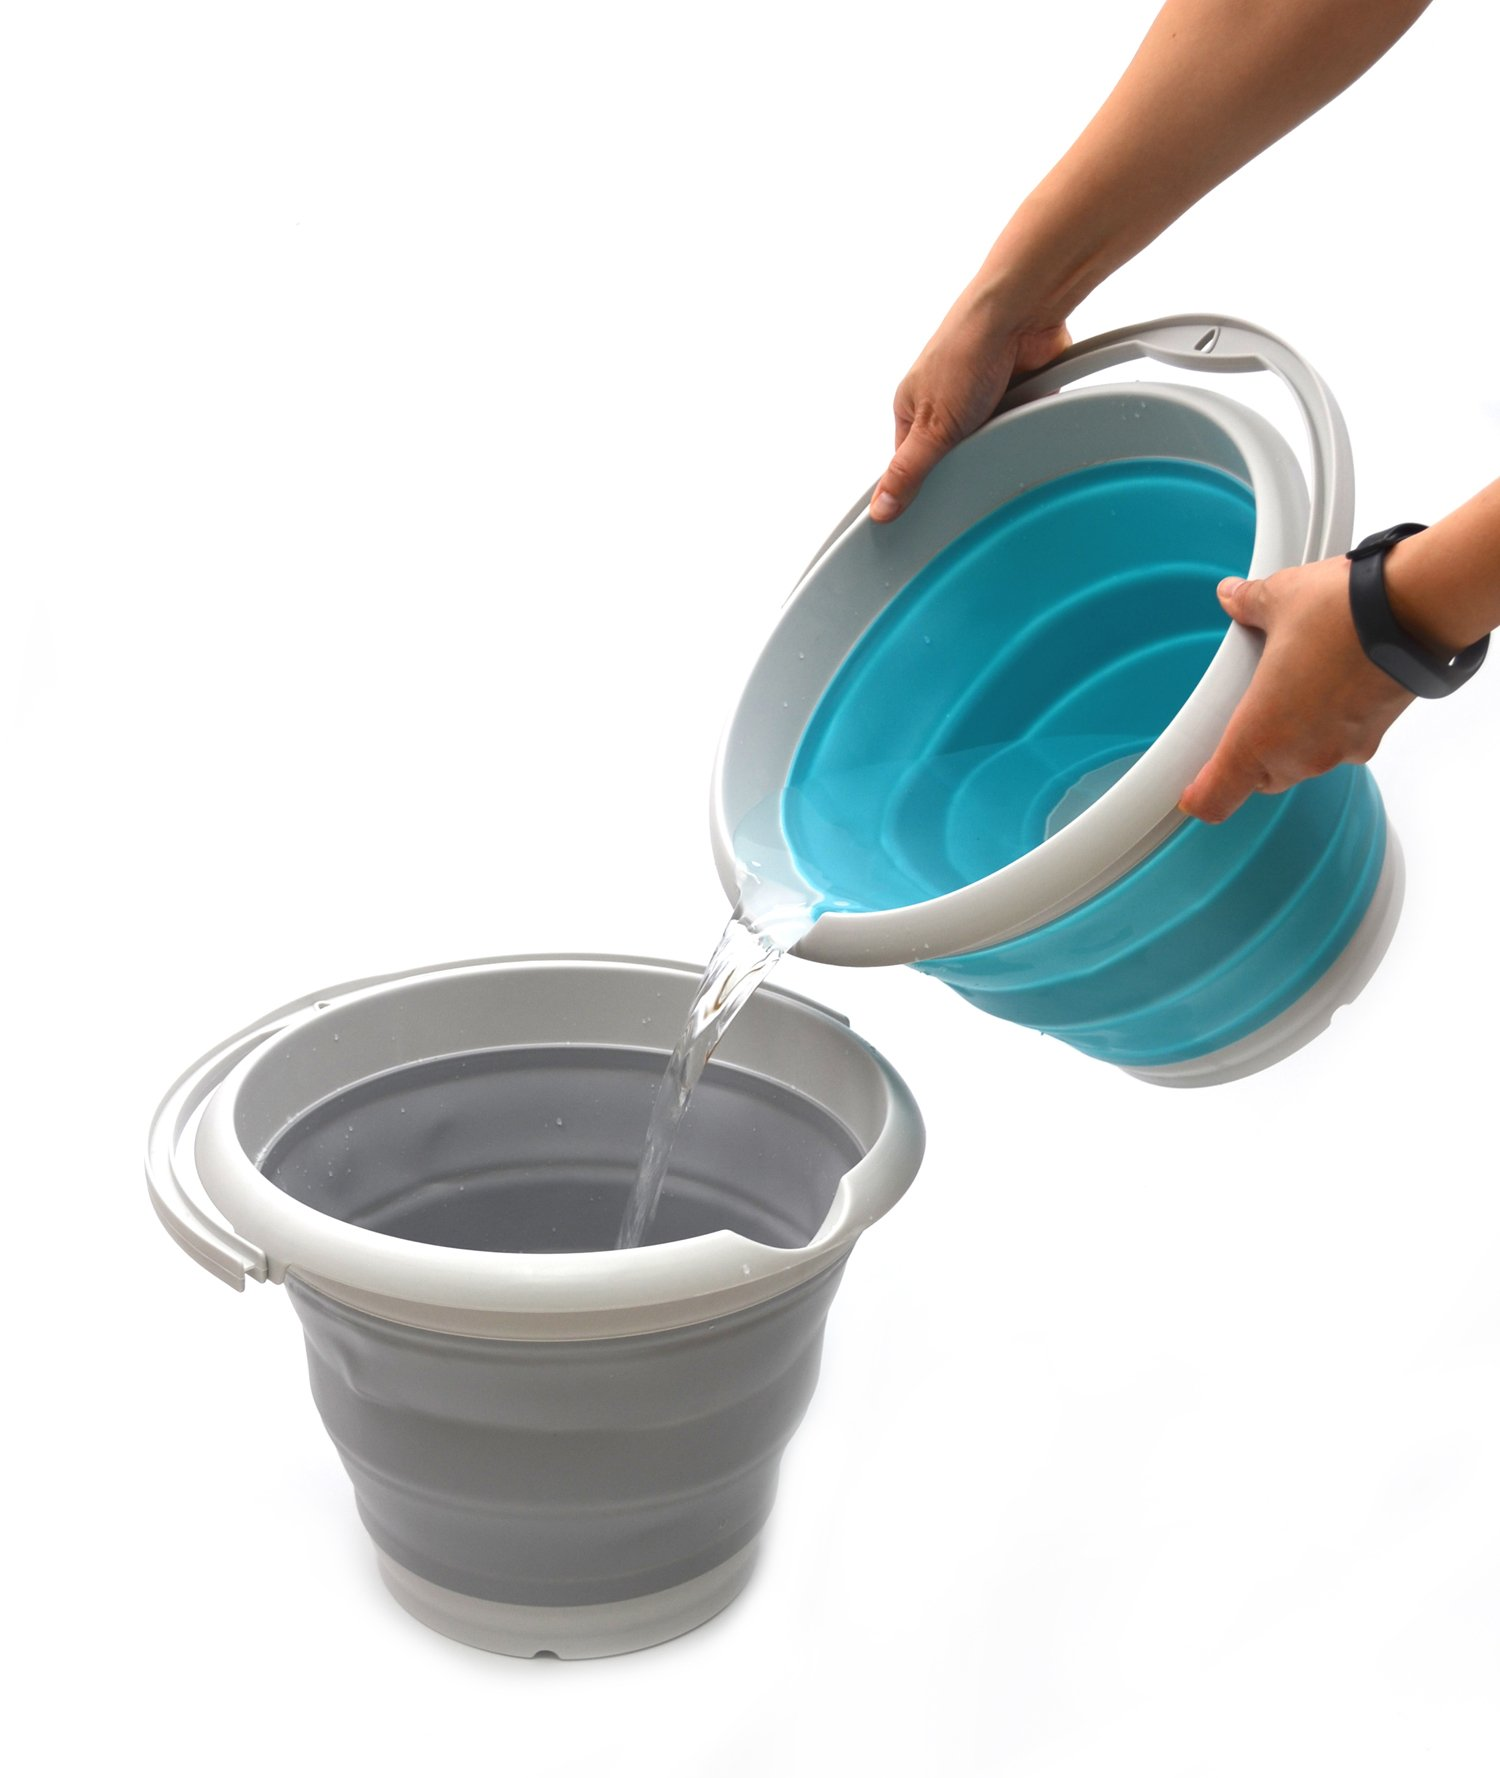 SAMMART 10L (2.6 Gallon) Collapsible Plastic Bucket - Foldable Round Tub - Portable Fishing Water Pail - Space Saving Outdoor Waterpot, size 33cm dia (1, Bright Blue) by SAMMART (Image #5)